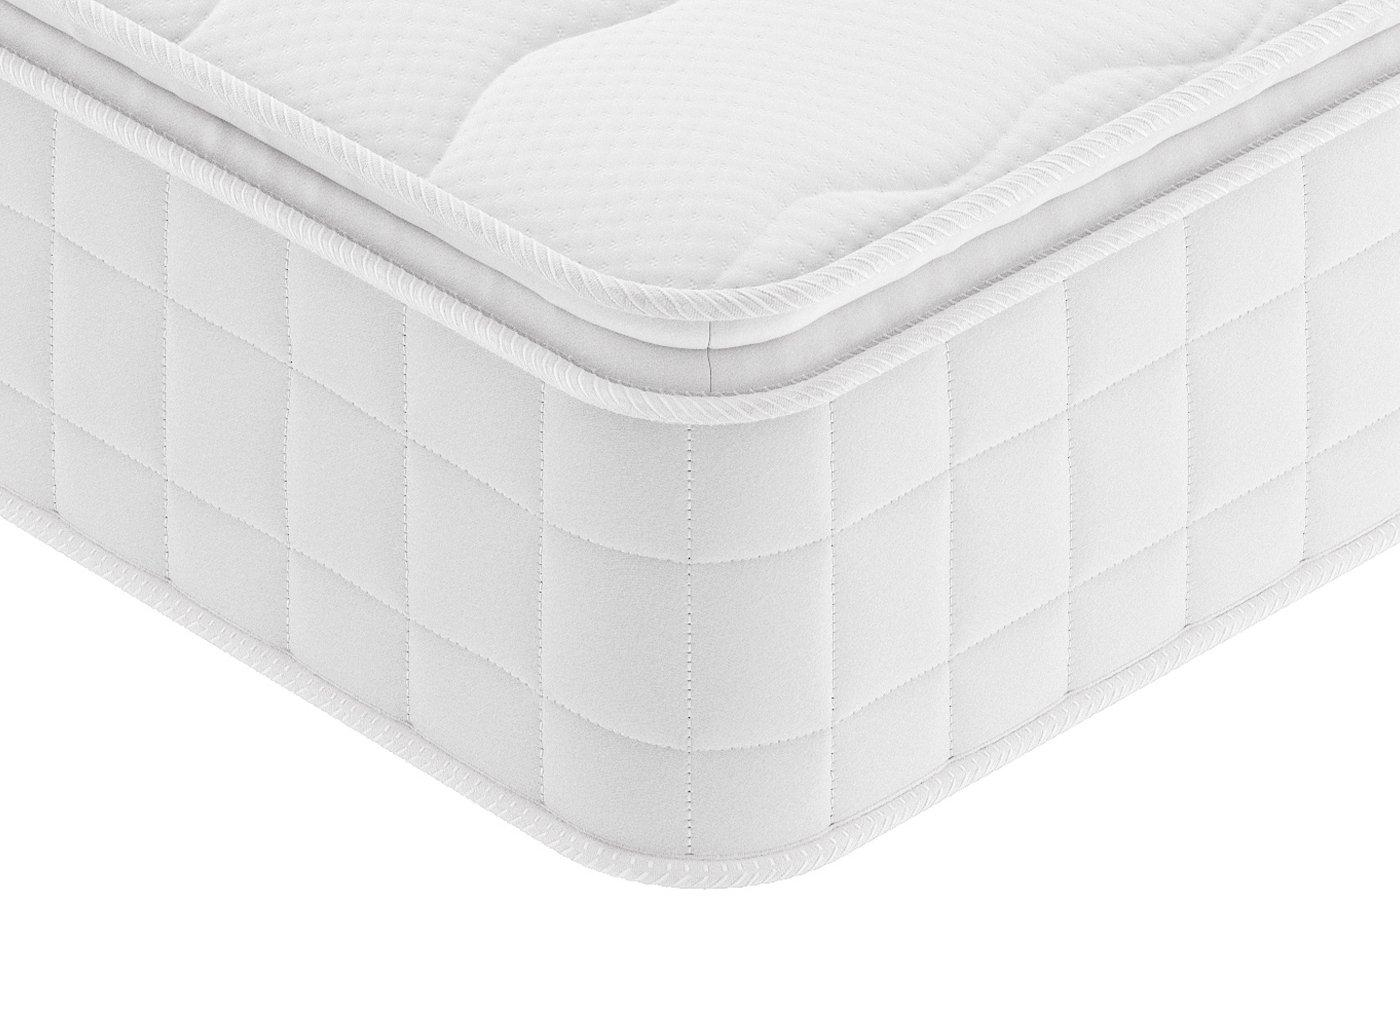 Therapur ActiGel Response 1000 SK Mattress 6'0 Super king